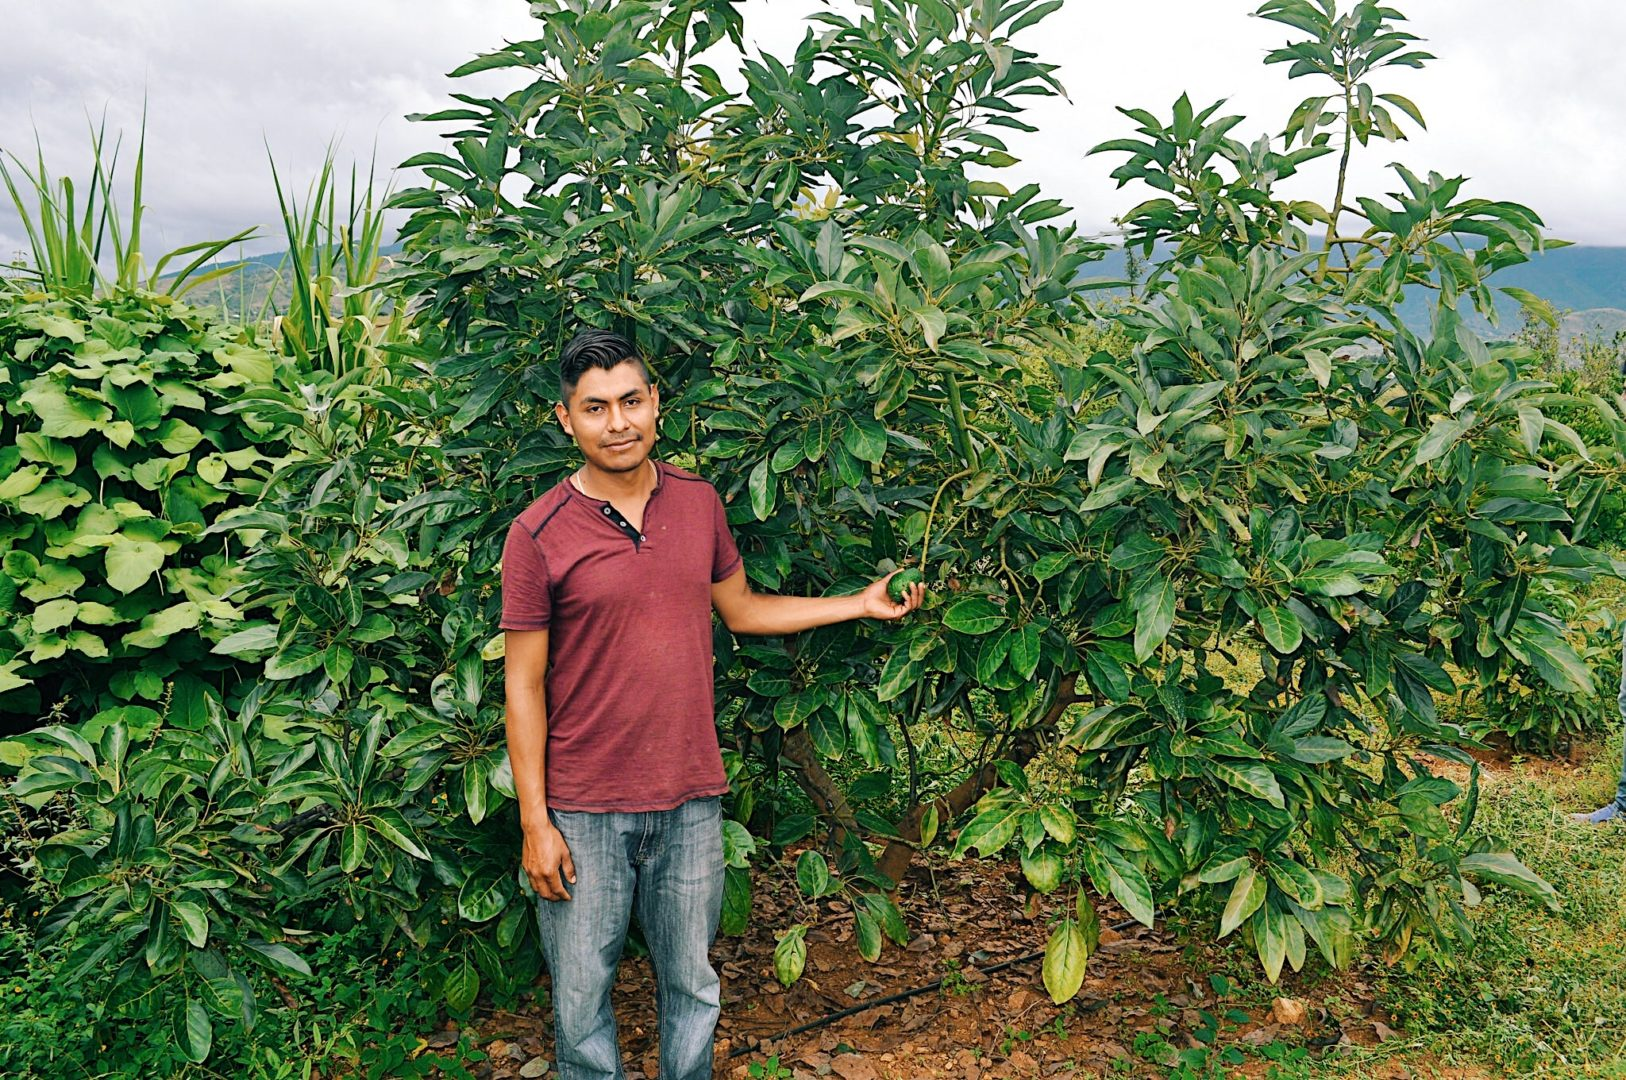 Avocados help Javier provide for his family.